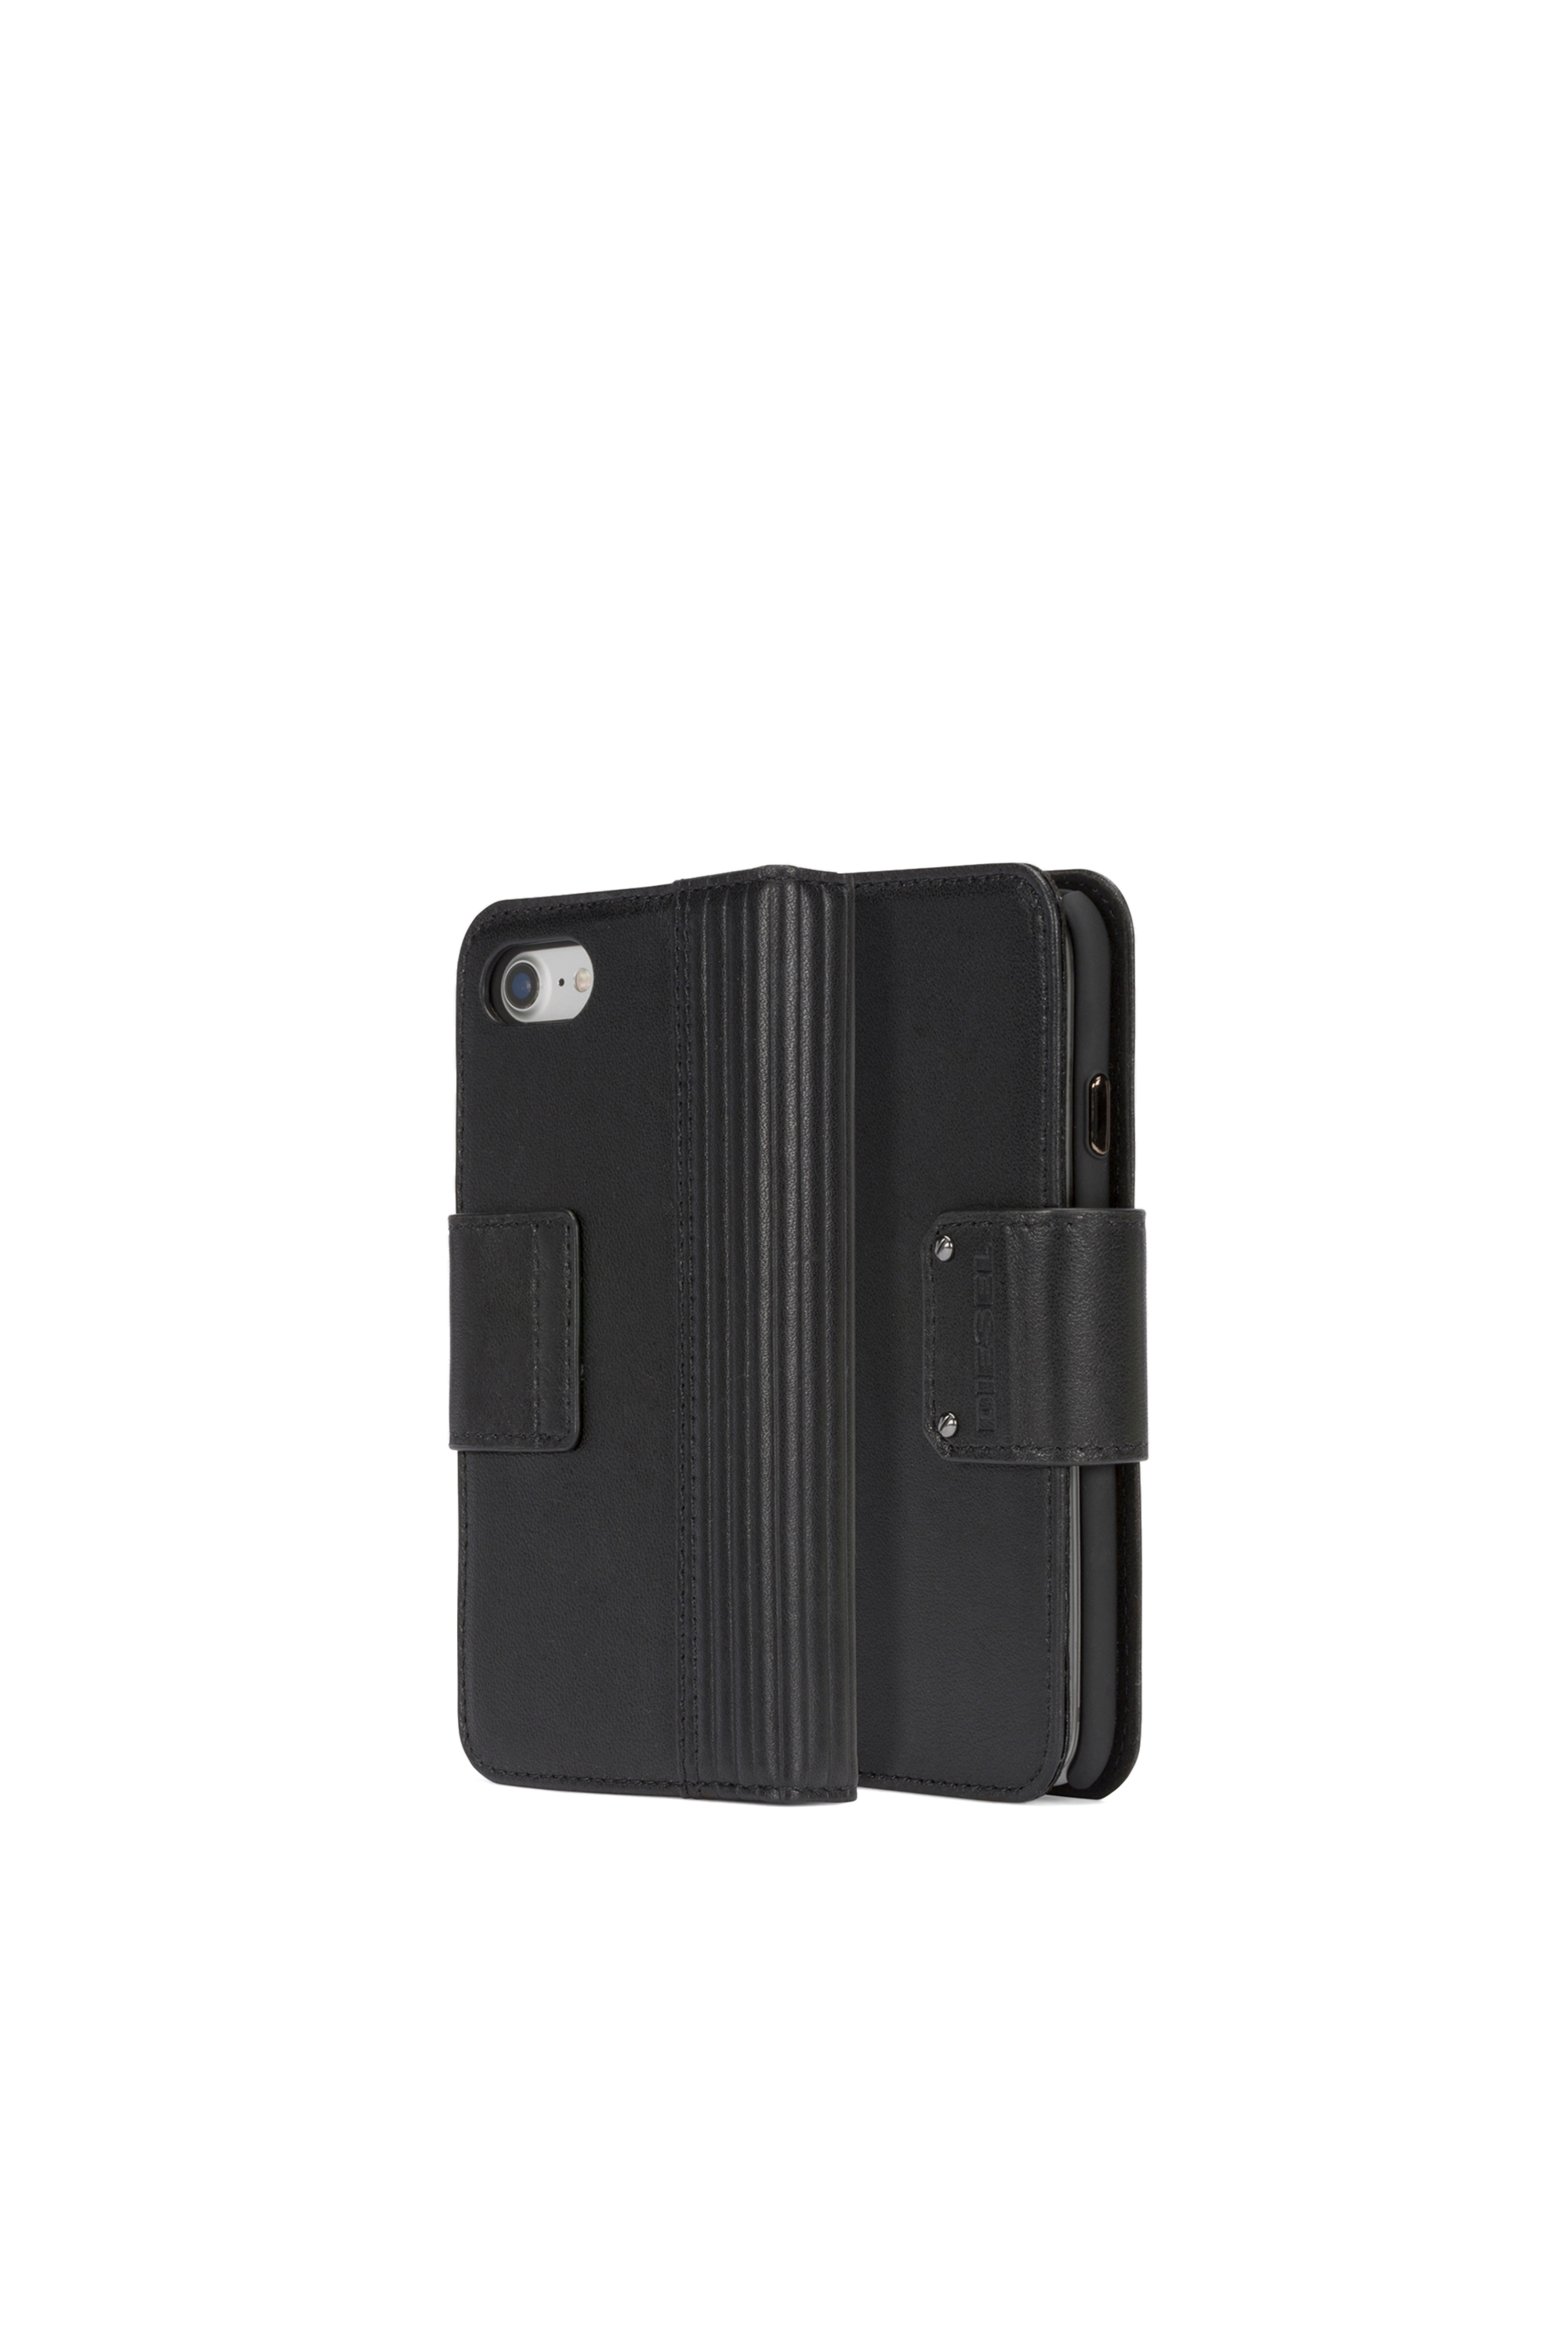 Diesel - BLACK LINED LEATHER IPHONE 8/7 FOLIO,  - Coques à rabat - Image 1